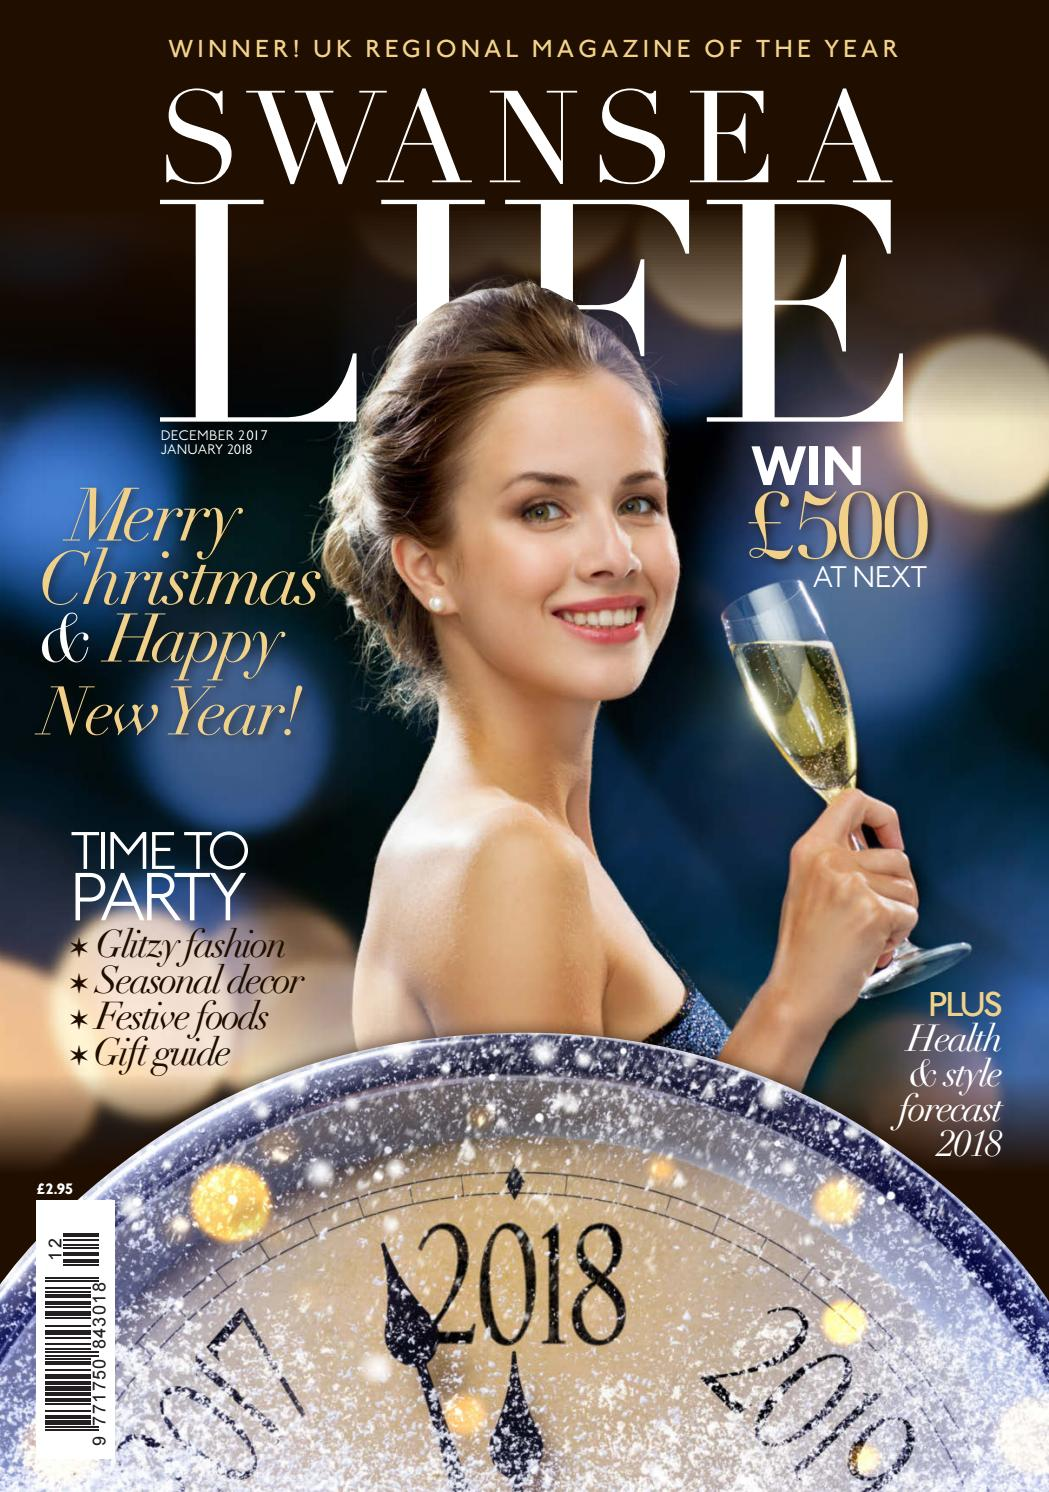 aff11e77db Swansea Life December 2017  January 2018 by Swansea Life - issuu